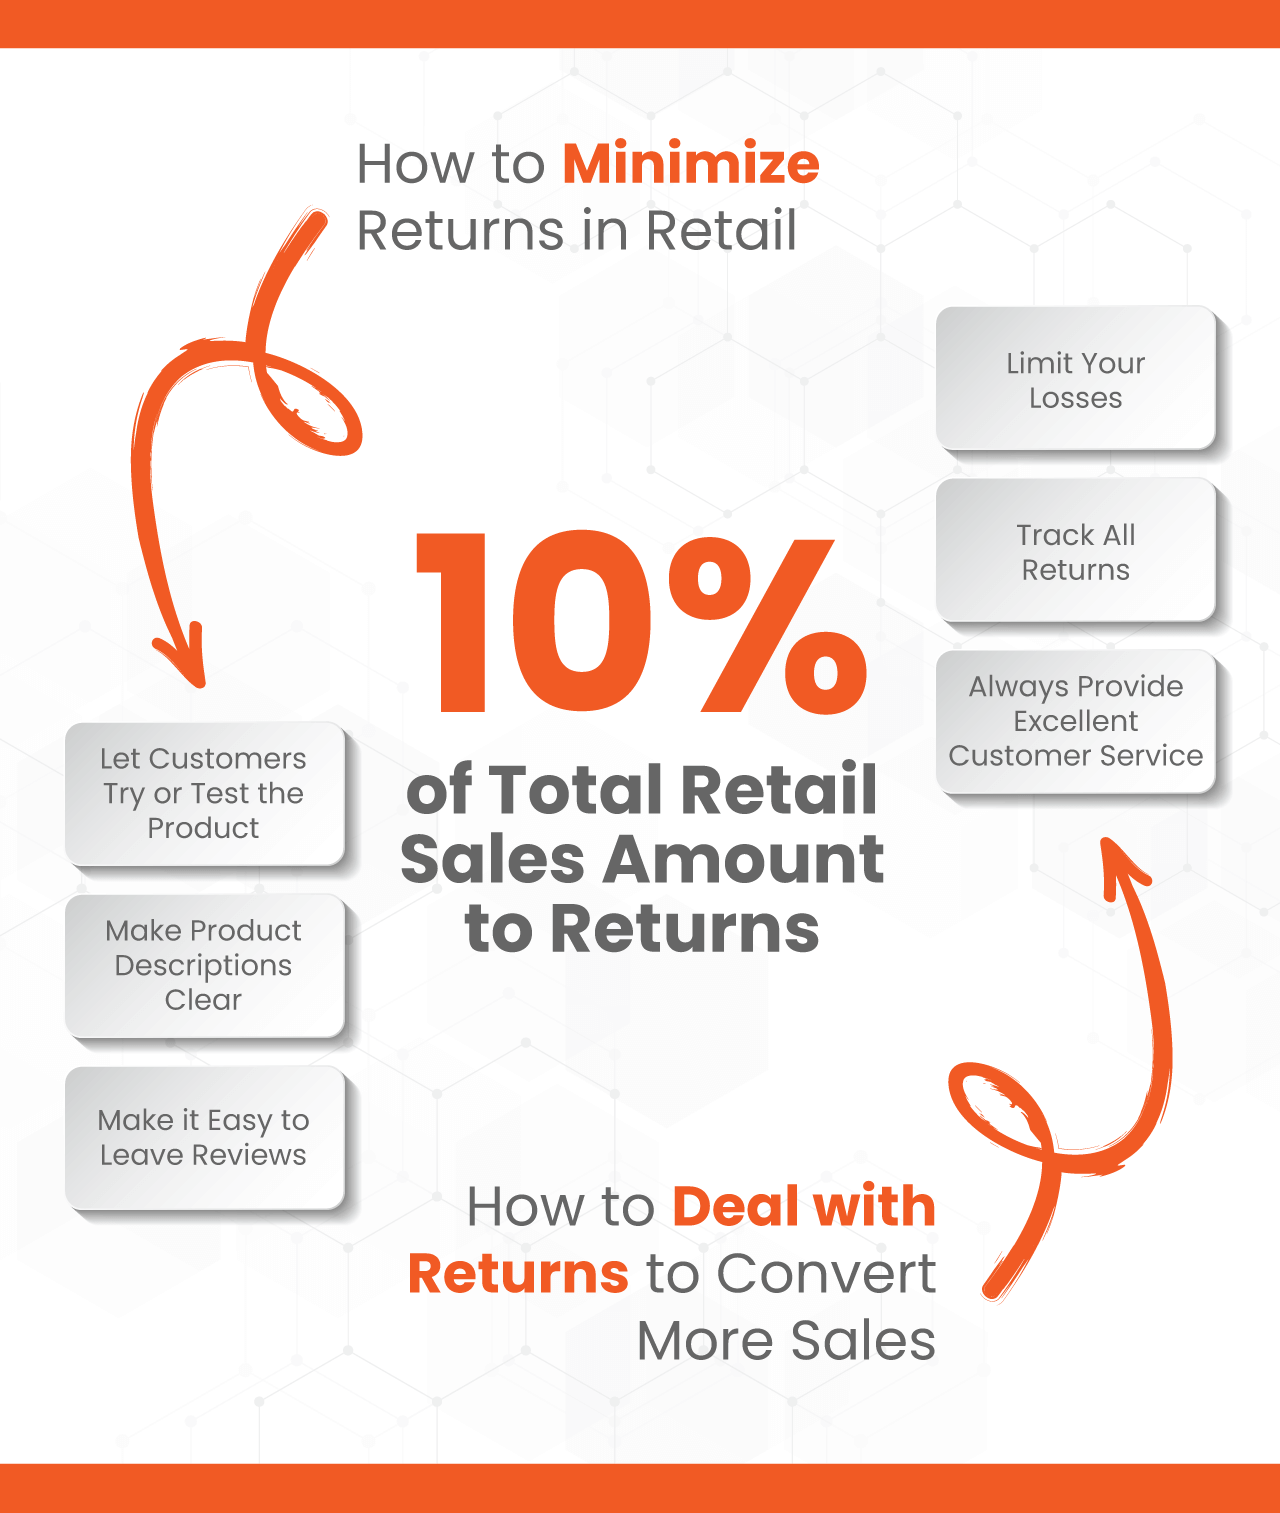 Infographic illustrating the steps to minimize returns in retail and convert more sales featuring stats of total retail returns